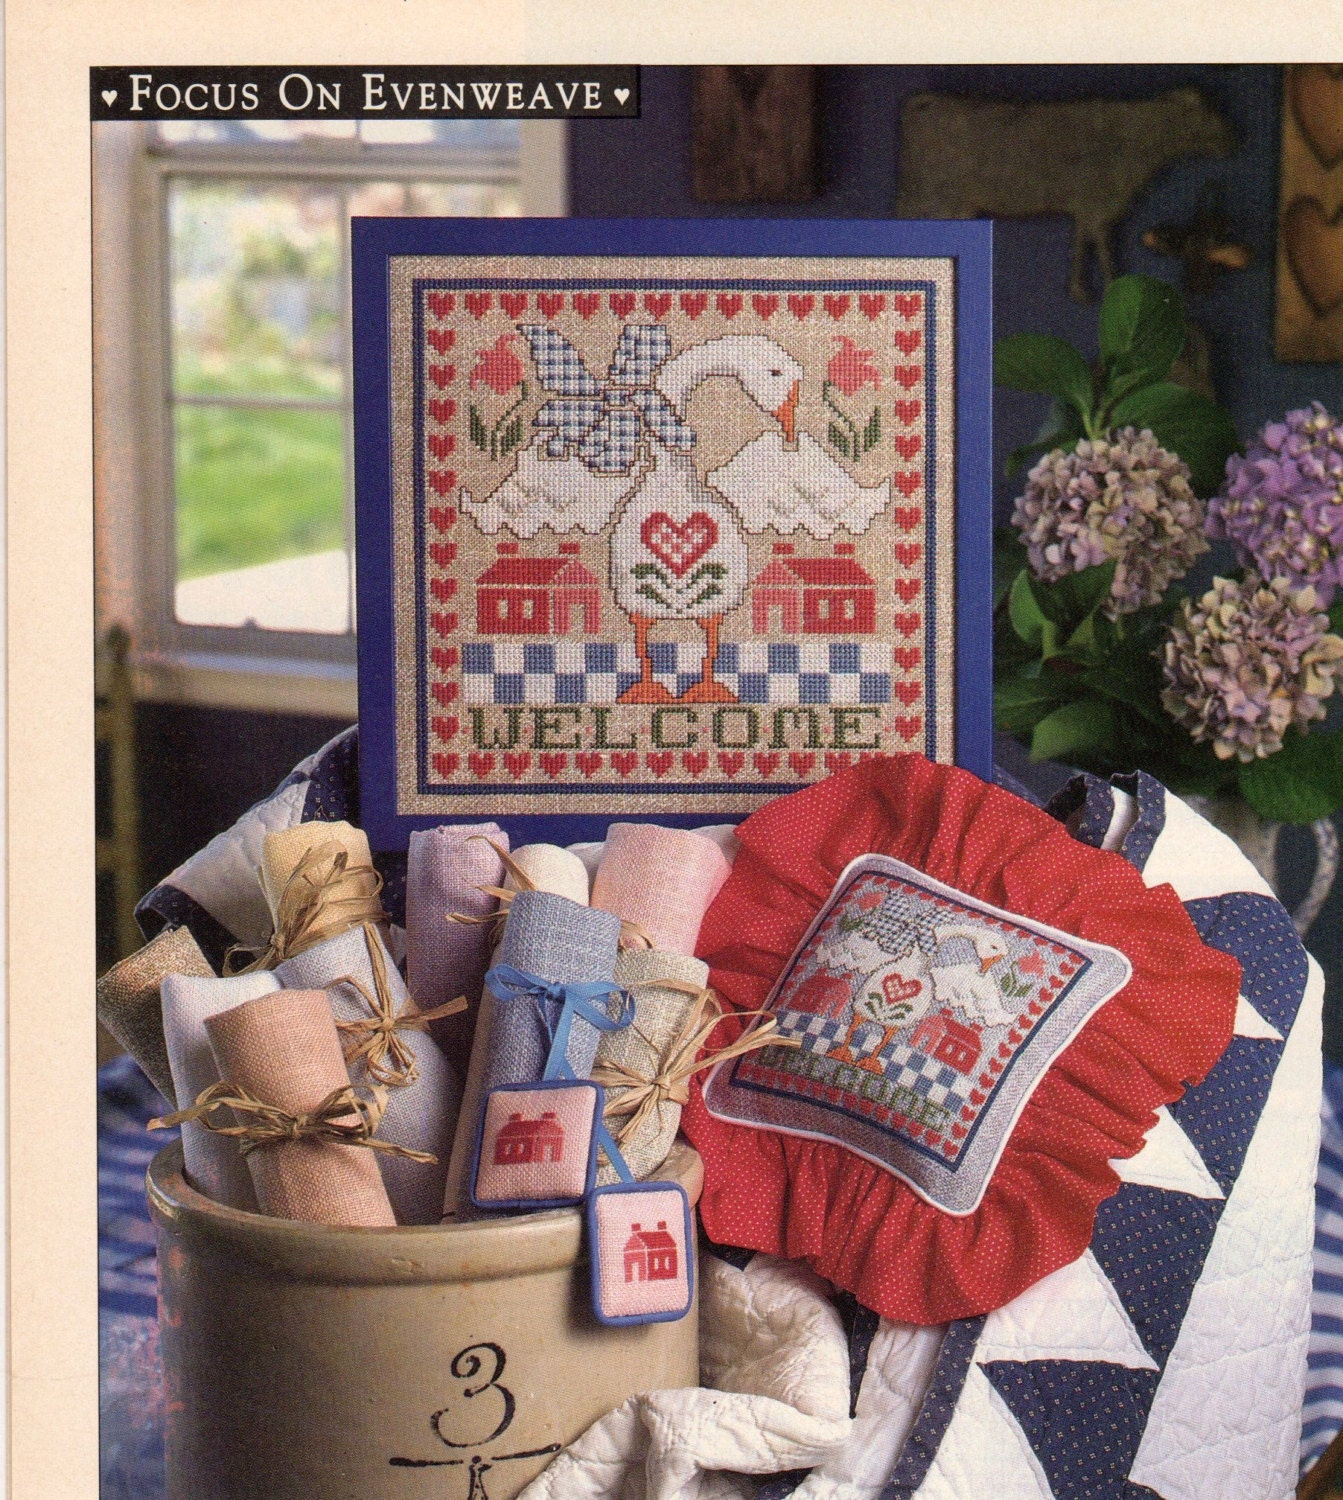 Cross stitch country crafts magazine back issues - Cross Stitch Country Crafts Issue Jan Feb93 Sold By Kryssyscraftstash 1 50